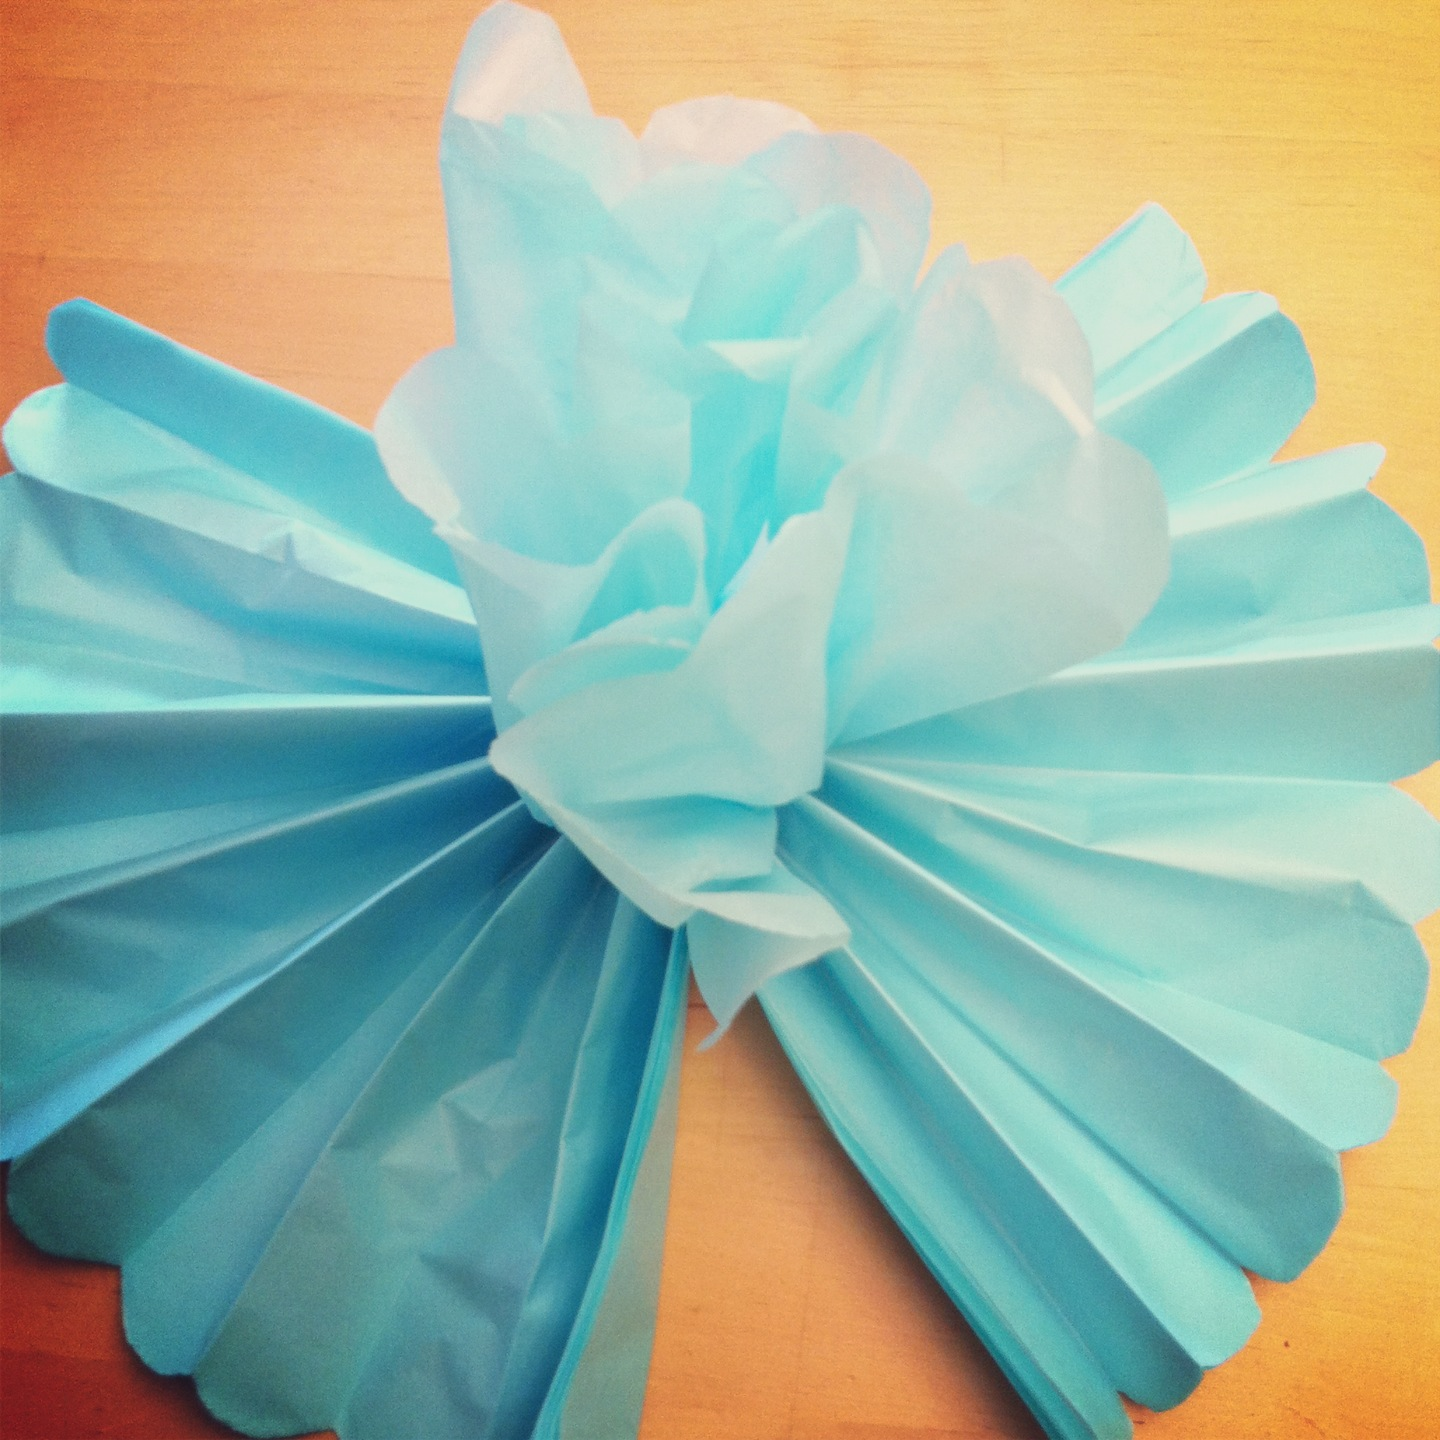 Tutorial  How To Make DIY Giant Tissue Paper Flowers   Hello     DIY Giant Tissue Paper Flowers Tutorial 2 for  1 00 Make Beautiful Birthday  Party Decorations Step 7